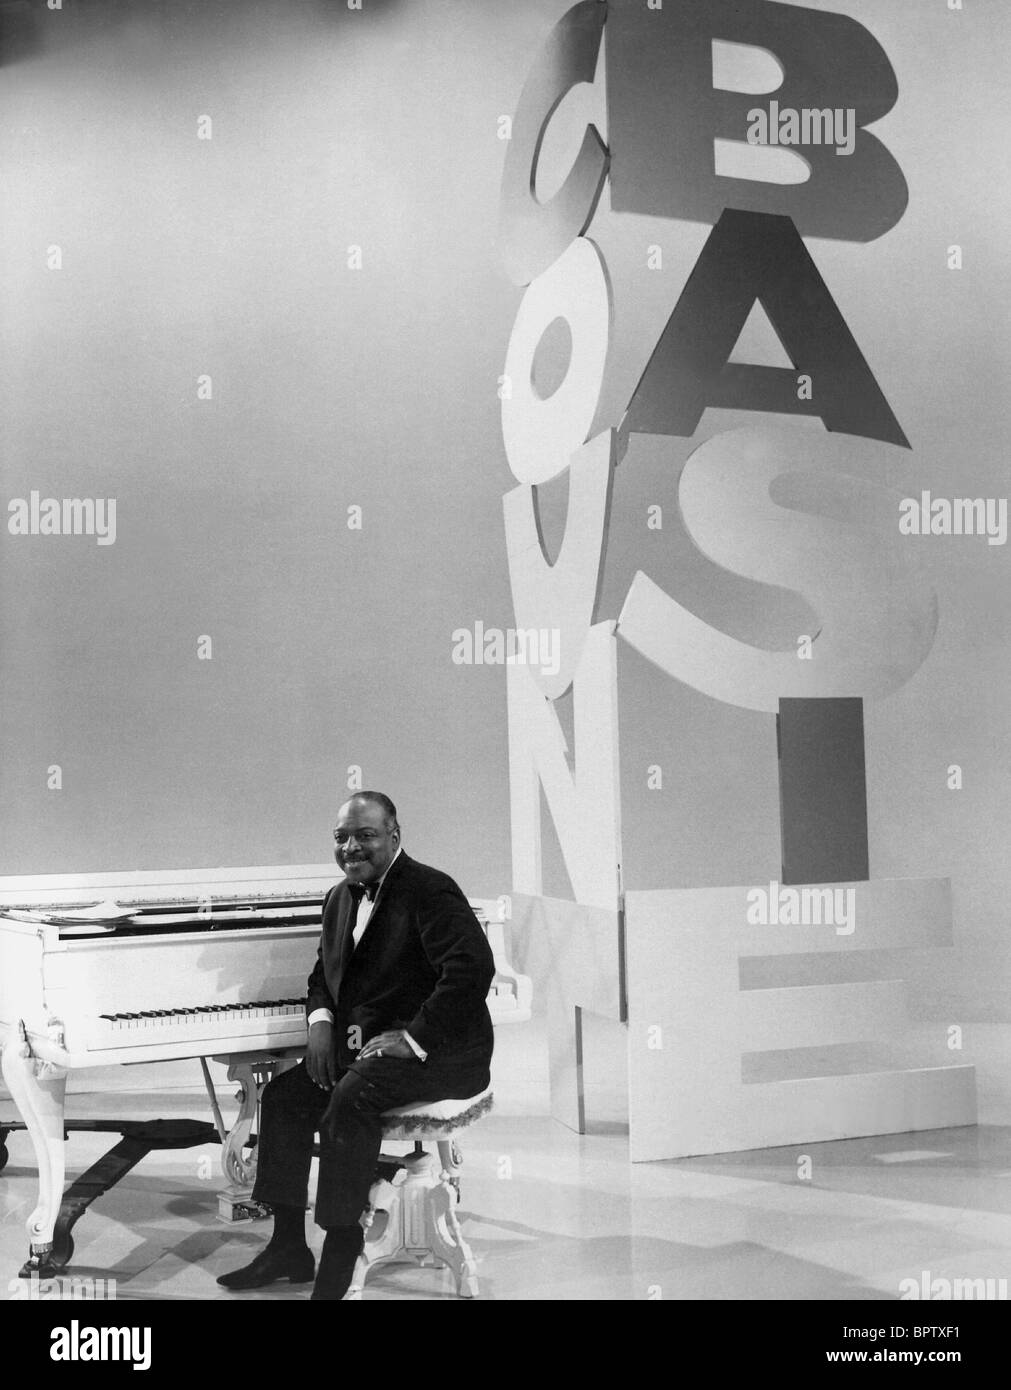 COUNT BASIE JAZZ MUSICIAN (1965) - Stock Image